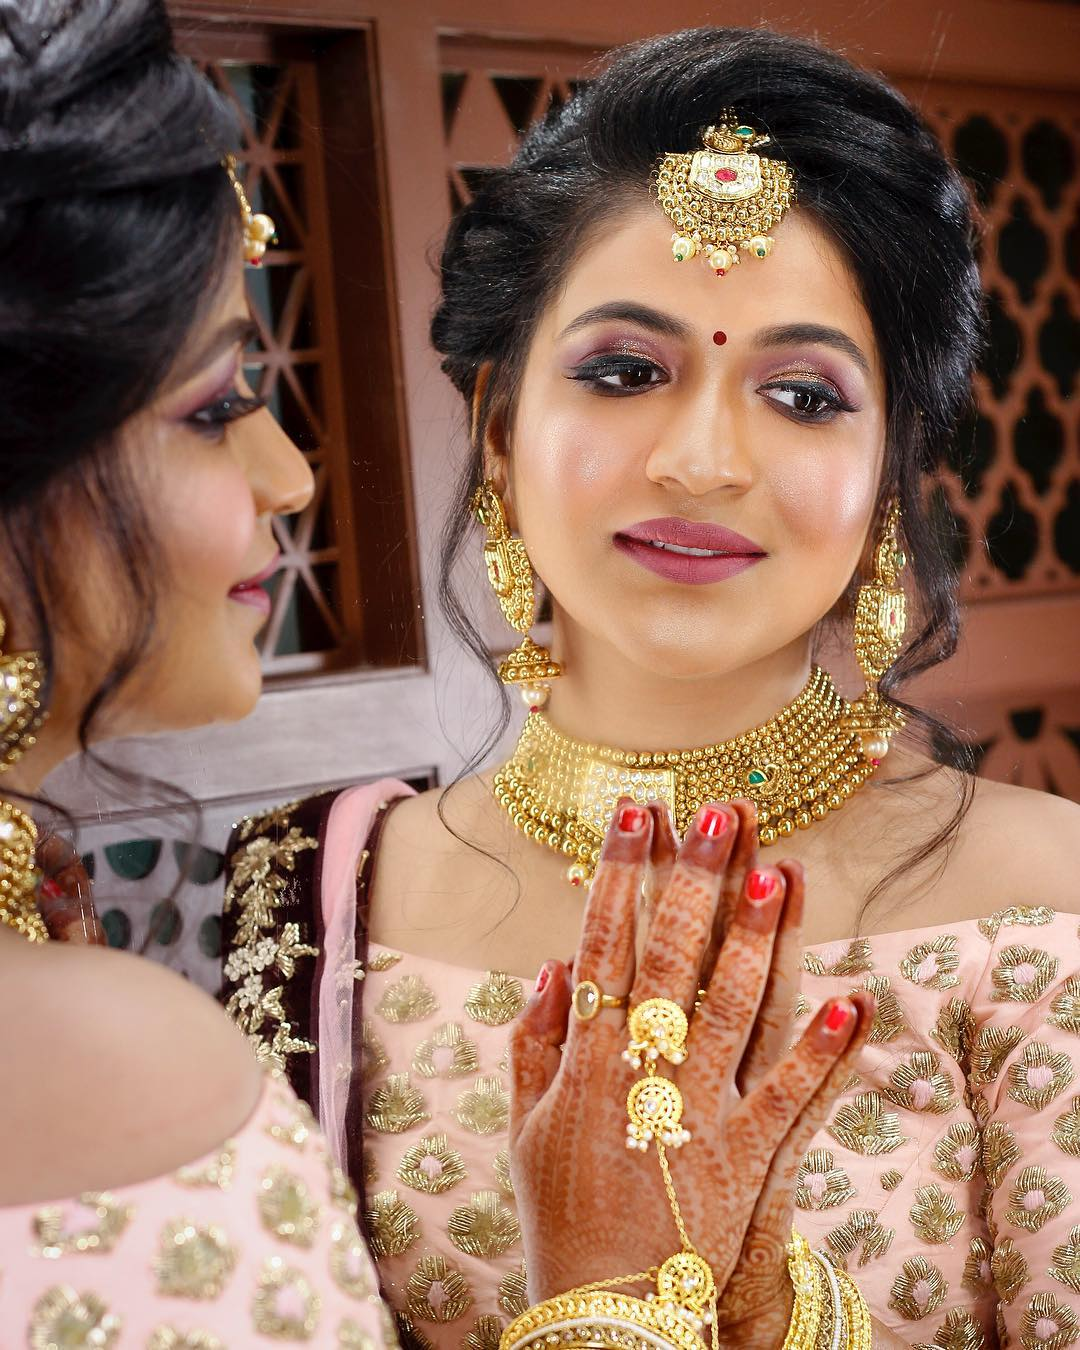 Soft and subtle: Indian Bridal Makeup Look in Celeb Style